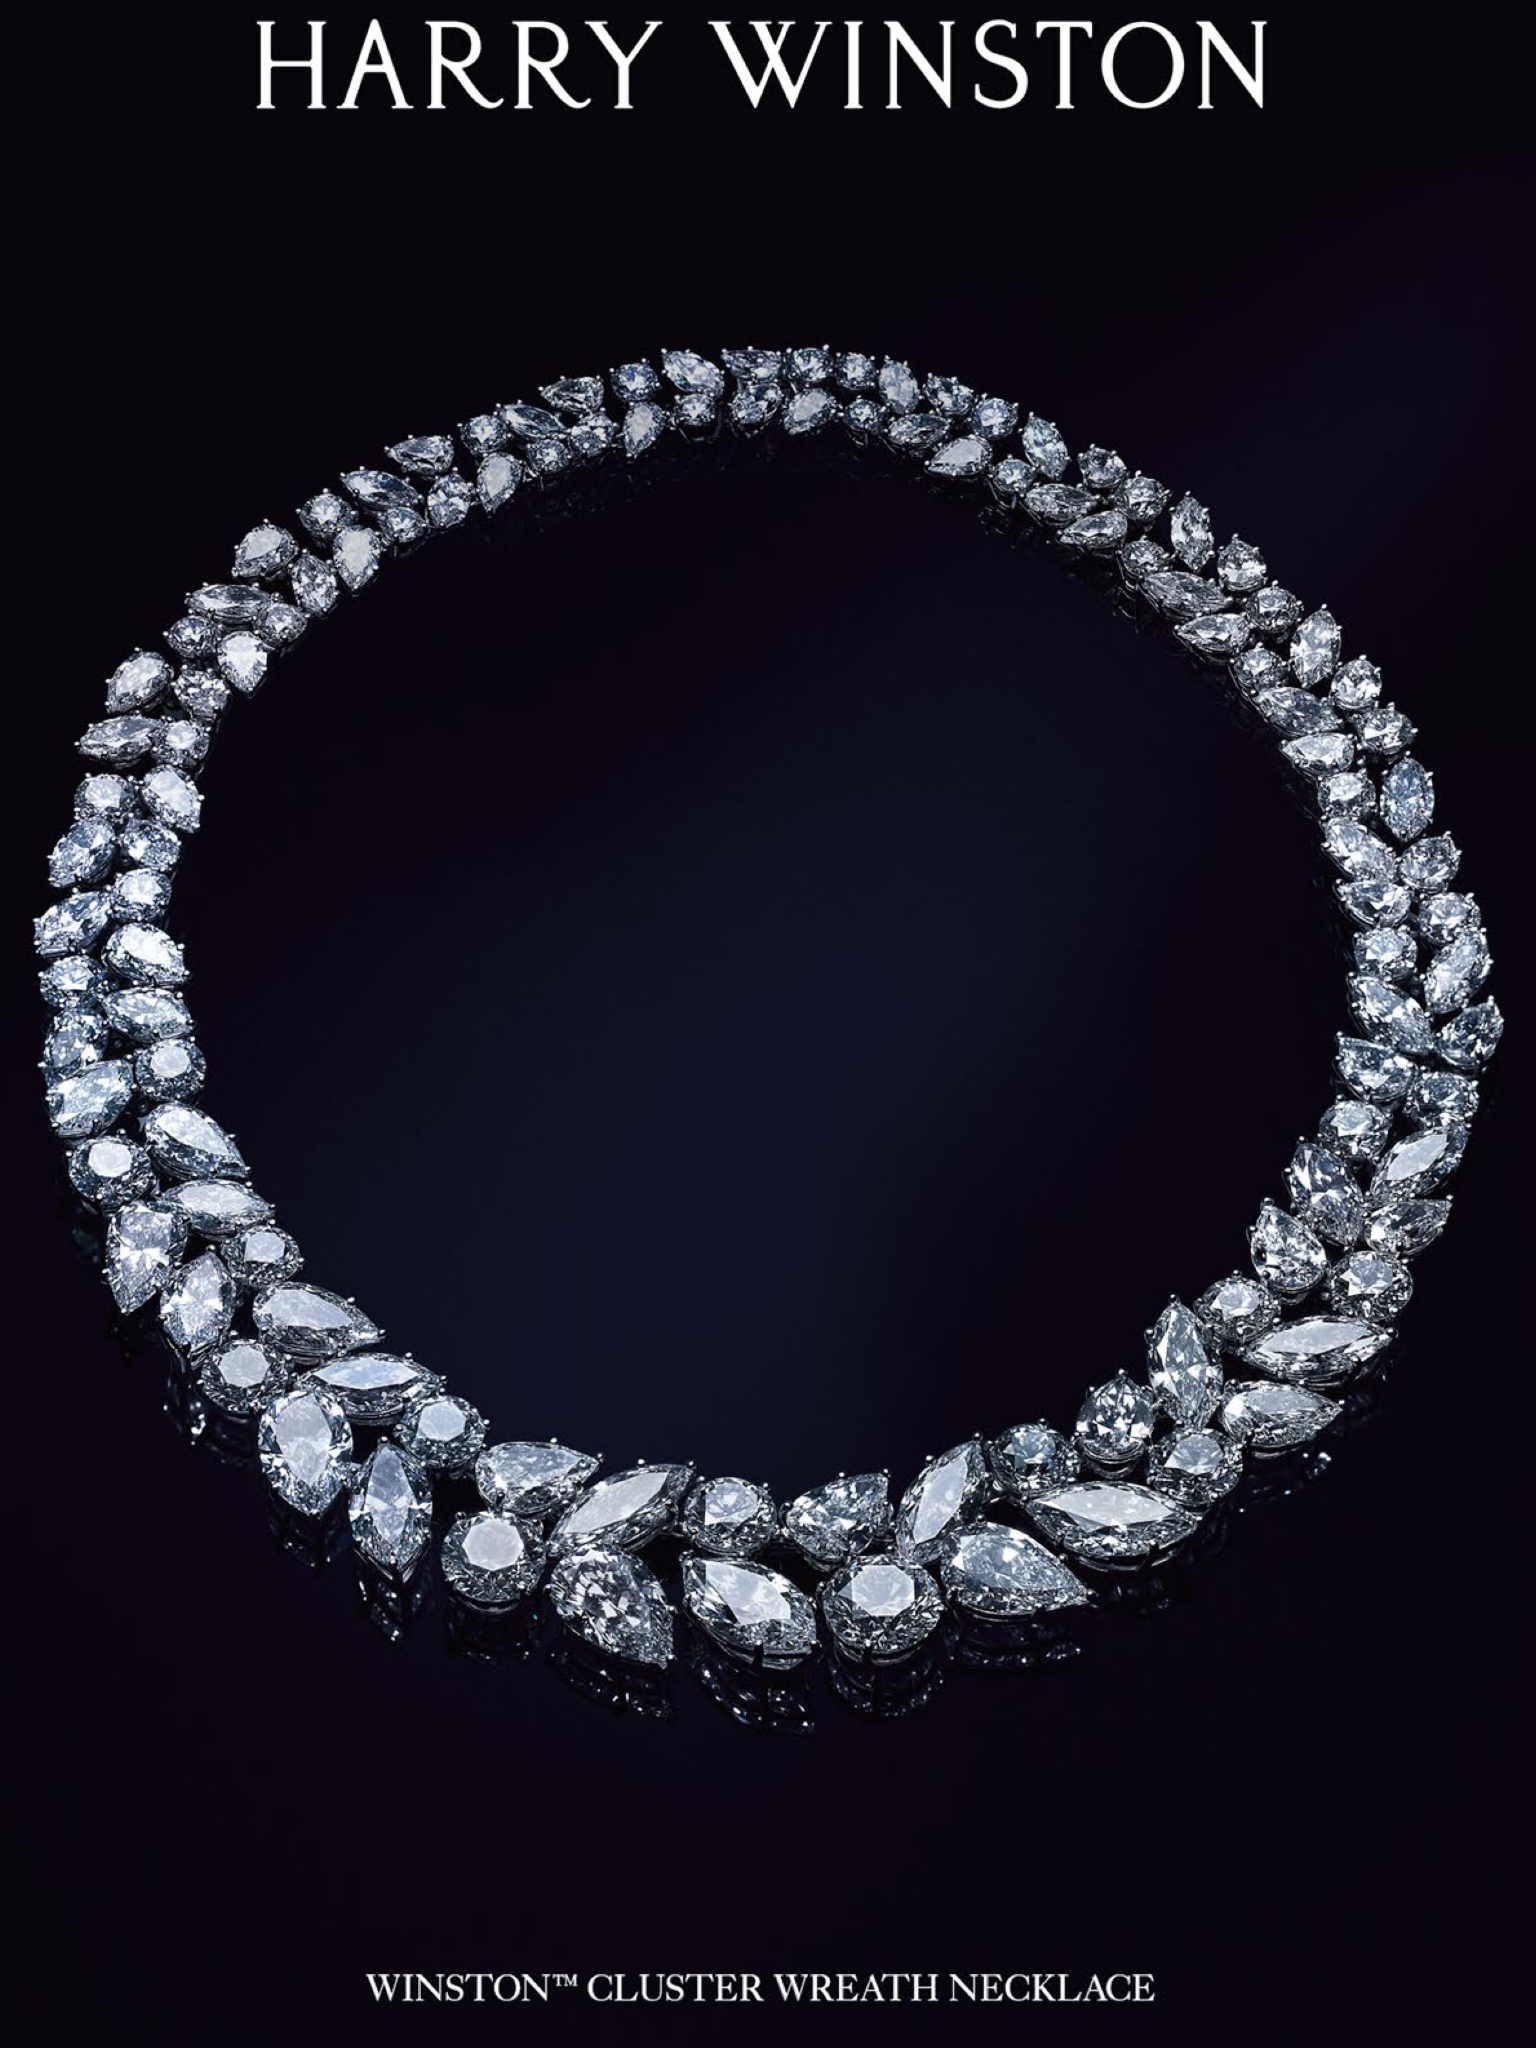 Harry Winston Cluster Wreath Necklace | Wreath Necklaces In Pertaining To Latest Diamond Wreath Necklaces (View 4 of 25)